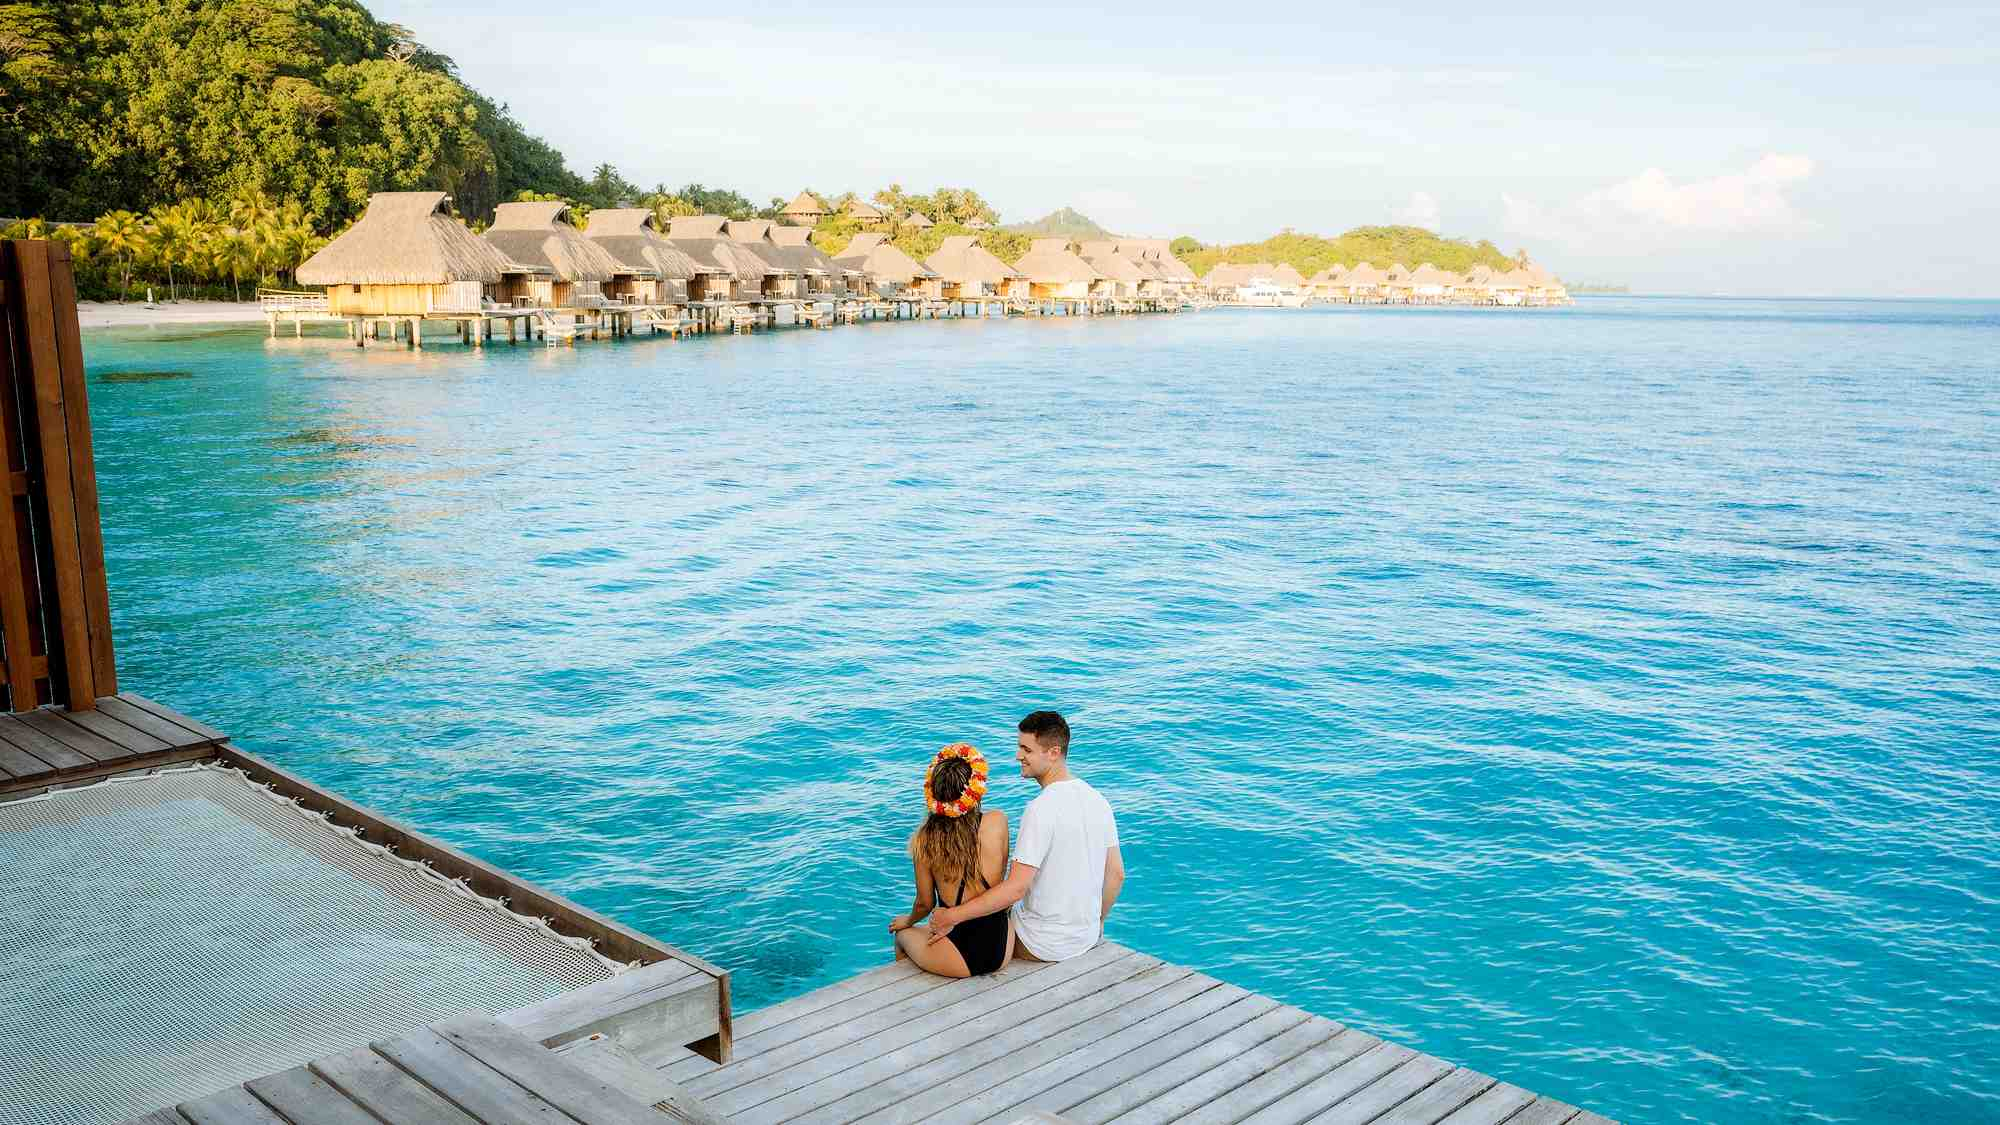 How much does an average trip to Bora Bora cost?